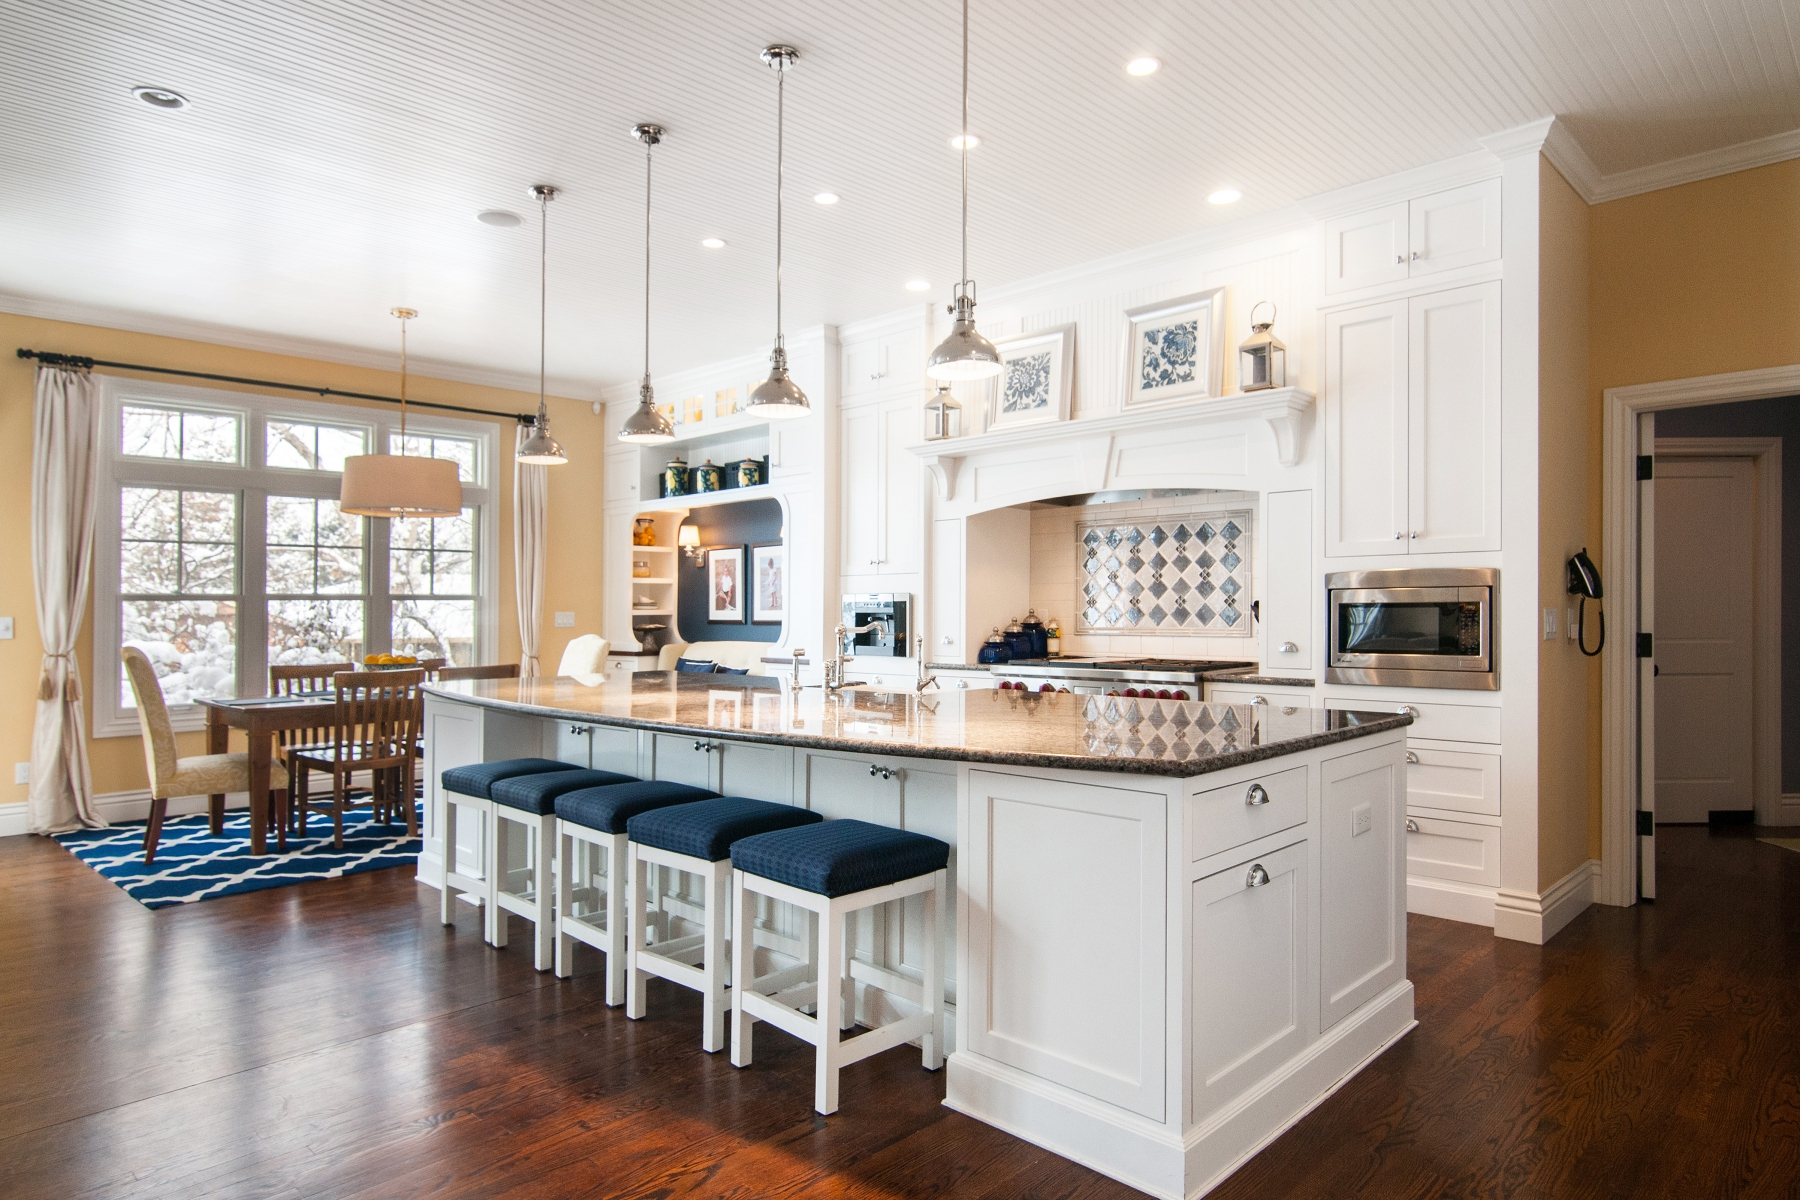 Sold in April, 2015 — 5867 Southmoor Lane, listed at $1,750,000 by LIV Sotheby's International Realty